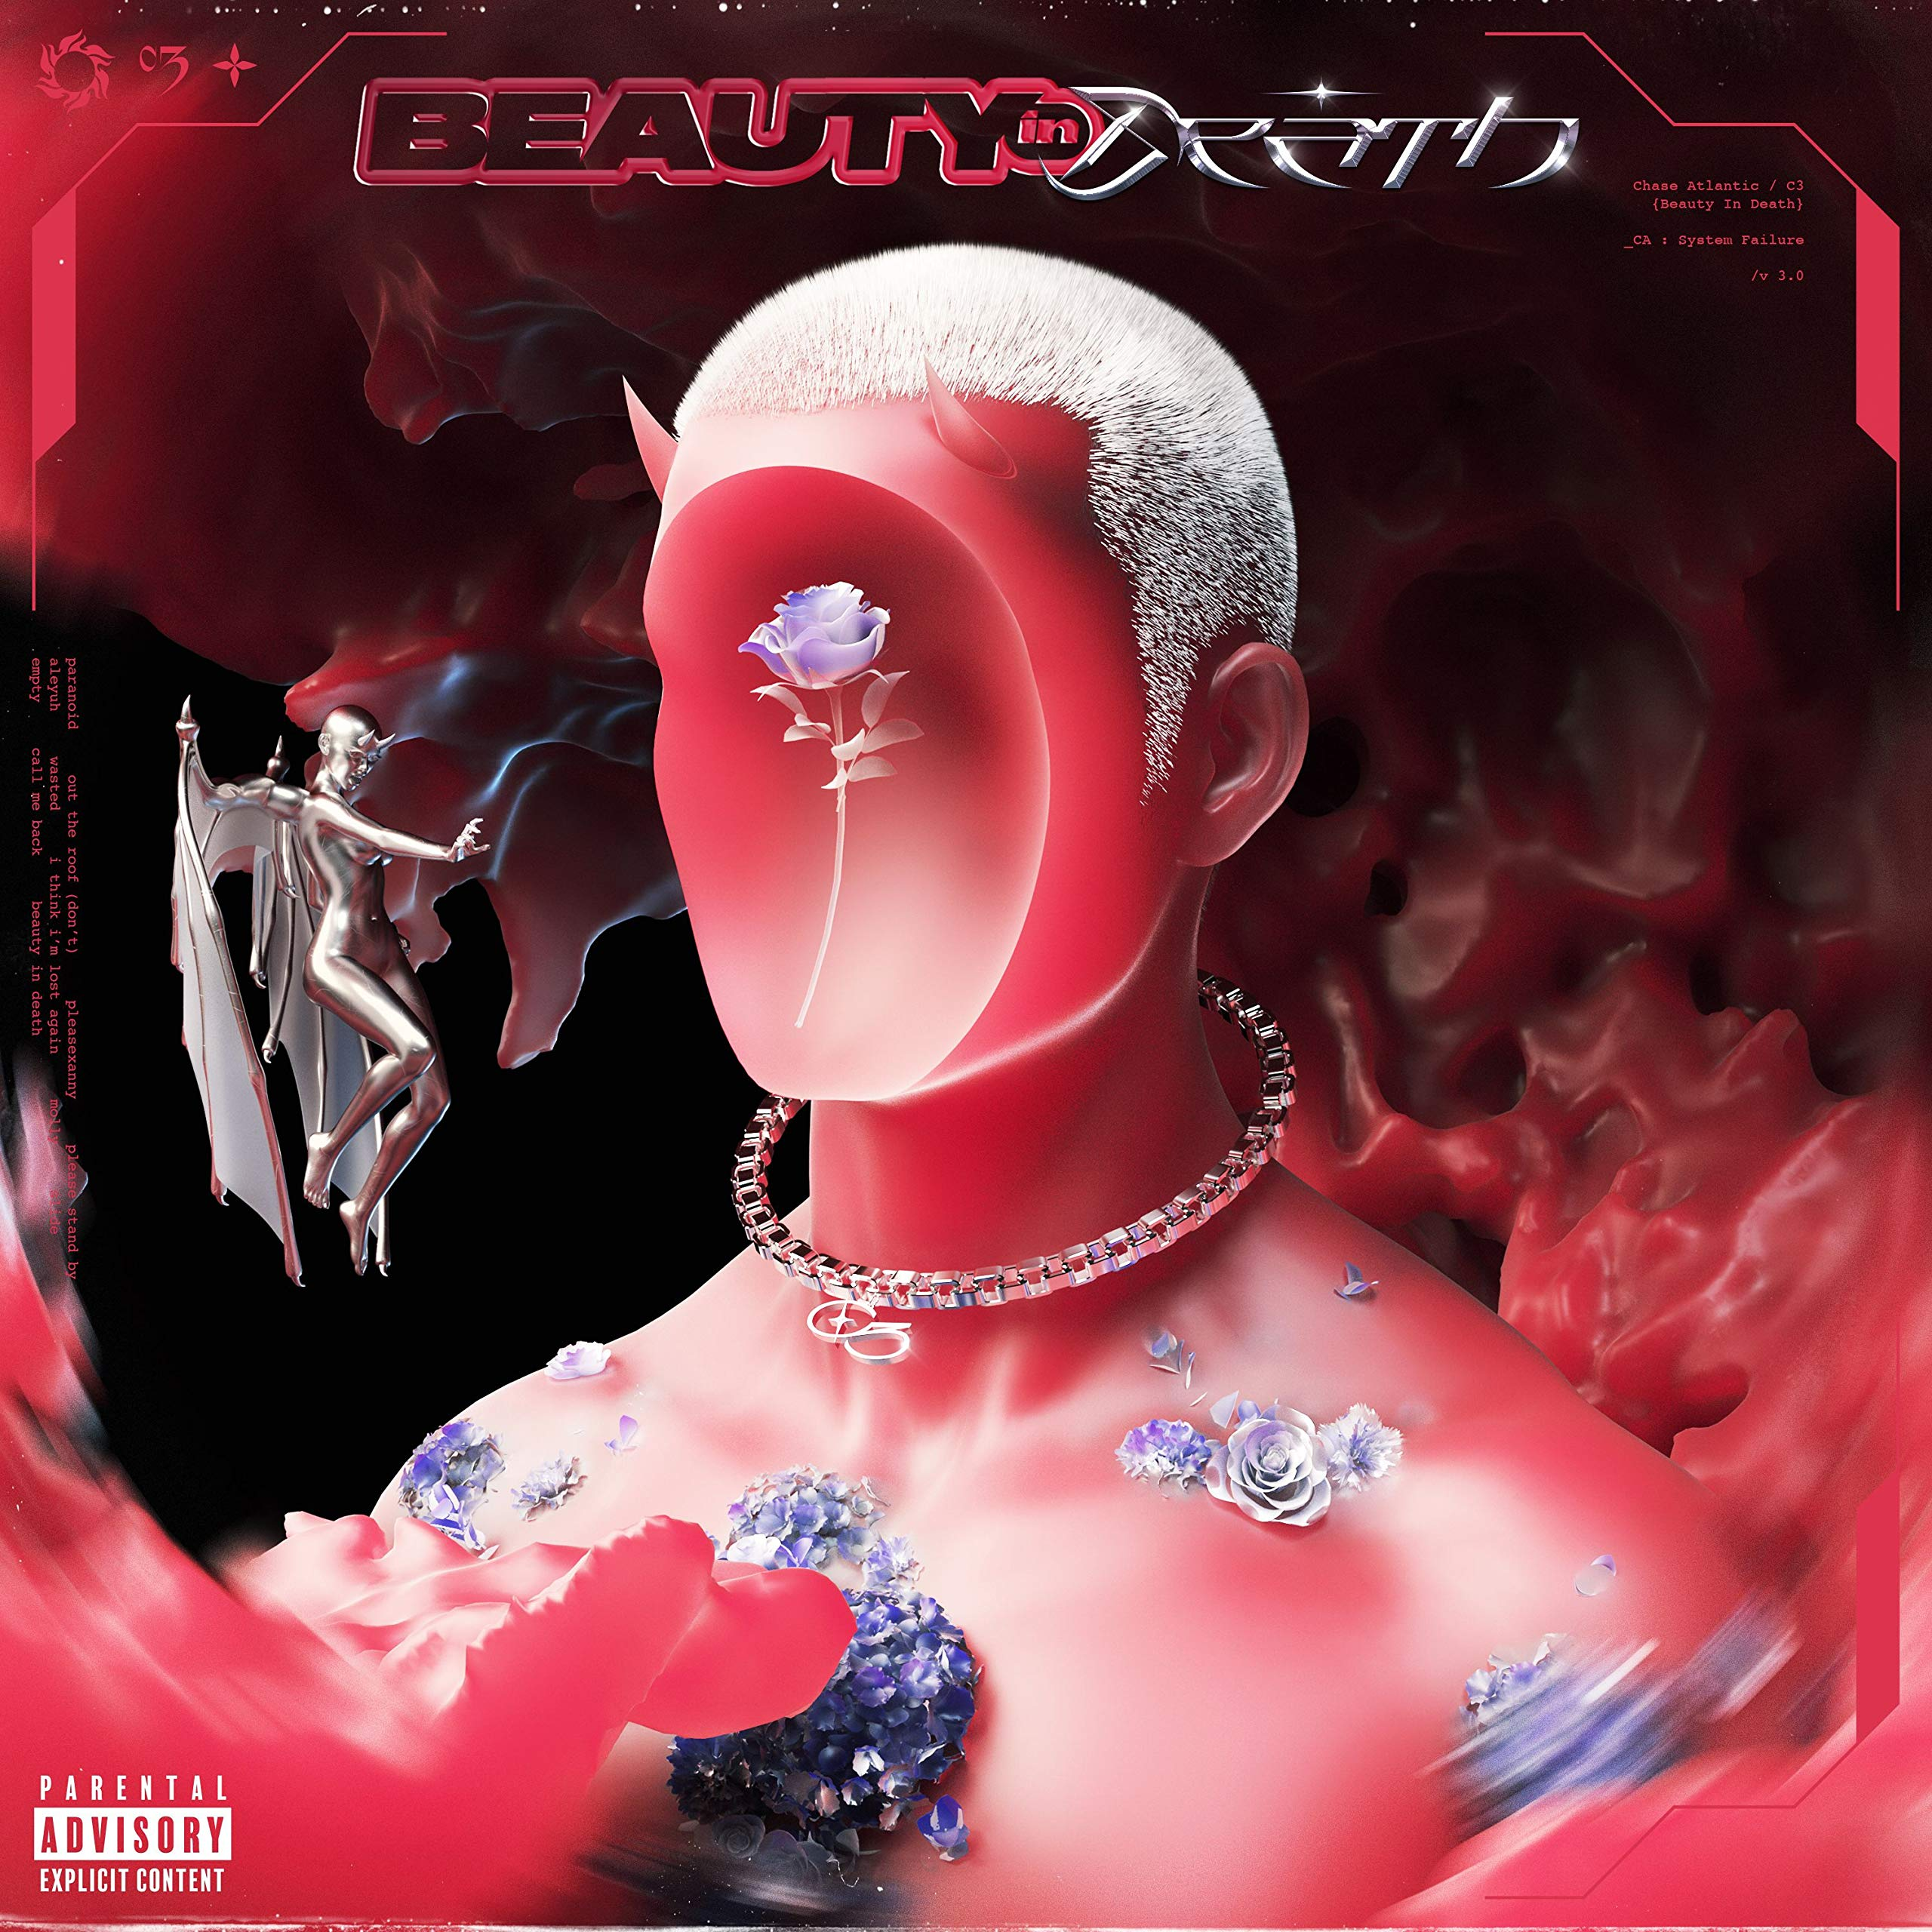 Chase Atlantic – Beauty In Death (2021) [FLAC]